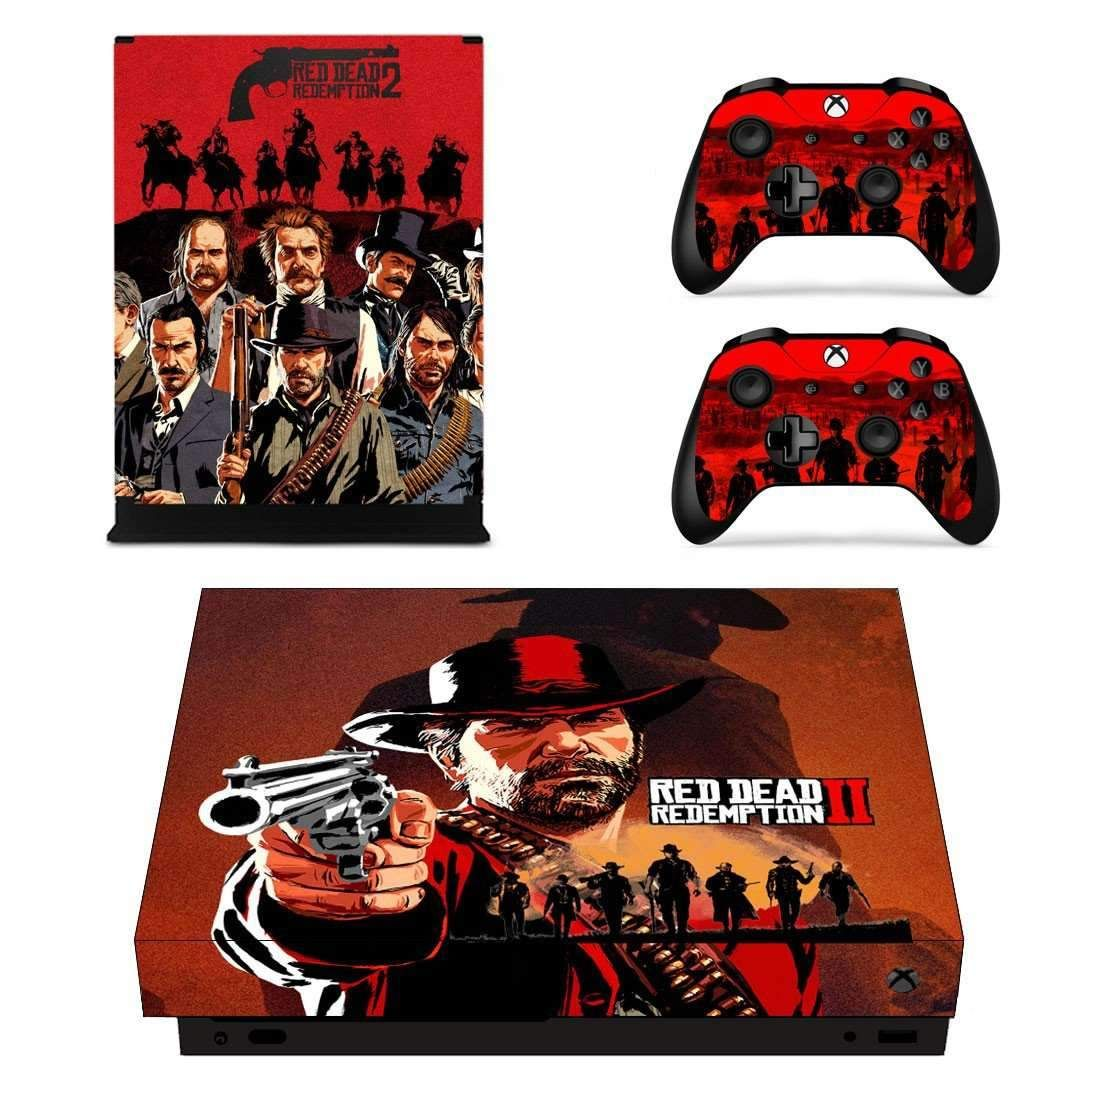 Red Dead Redemption 2 Xbox One X Skin For Xbox One X Console And Controllers Xbox One Xbox Red Dead Redemption